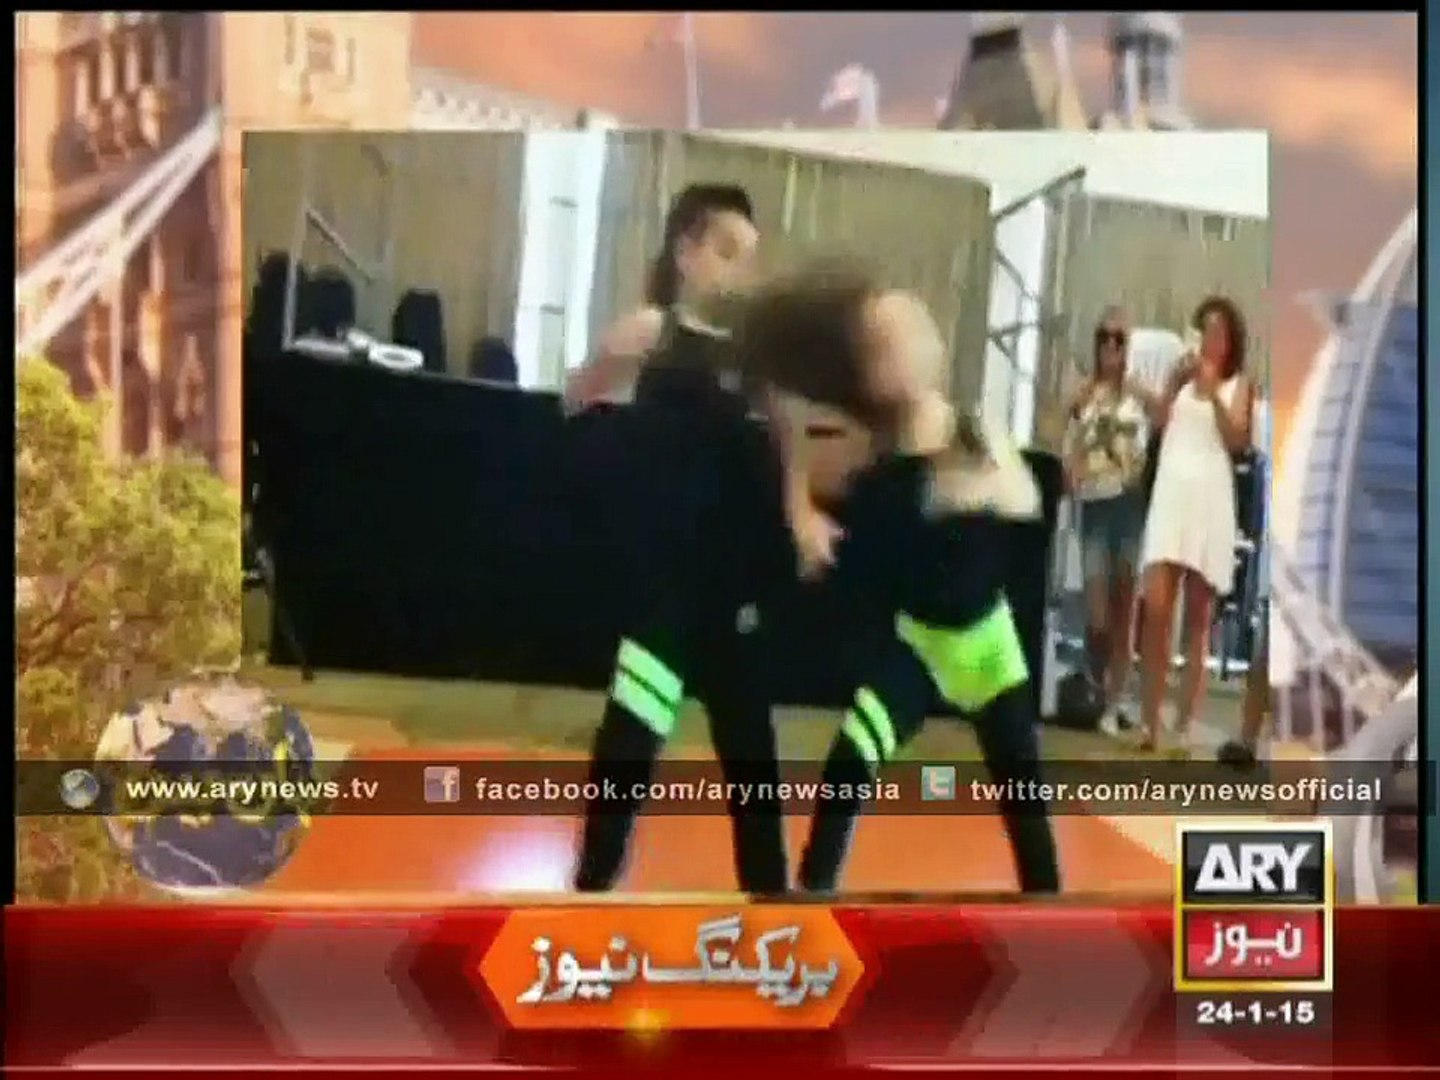 Awesome Dancing Kids  ARY NEWS TV